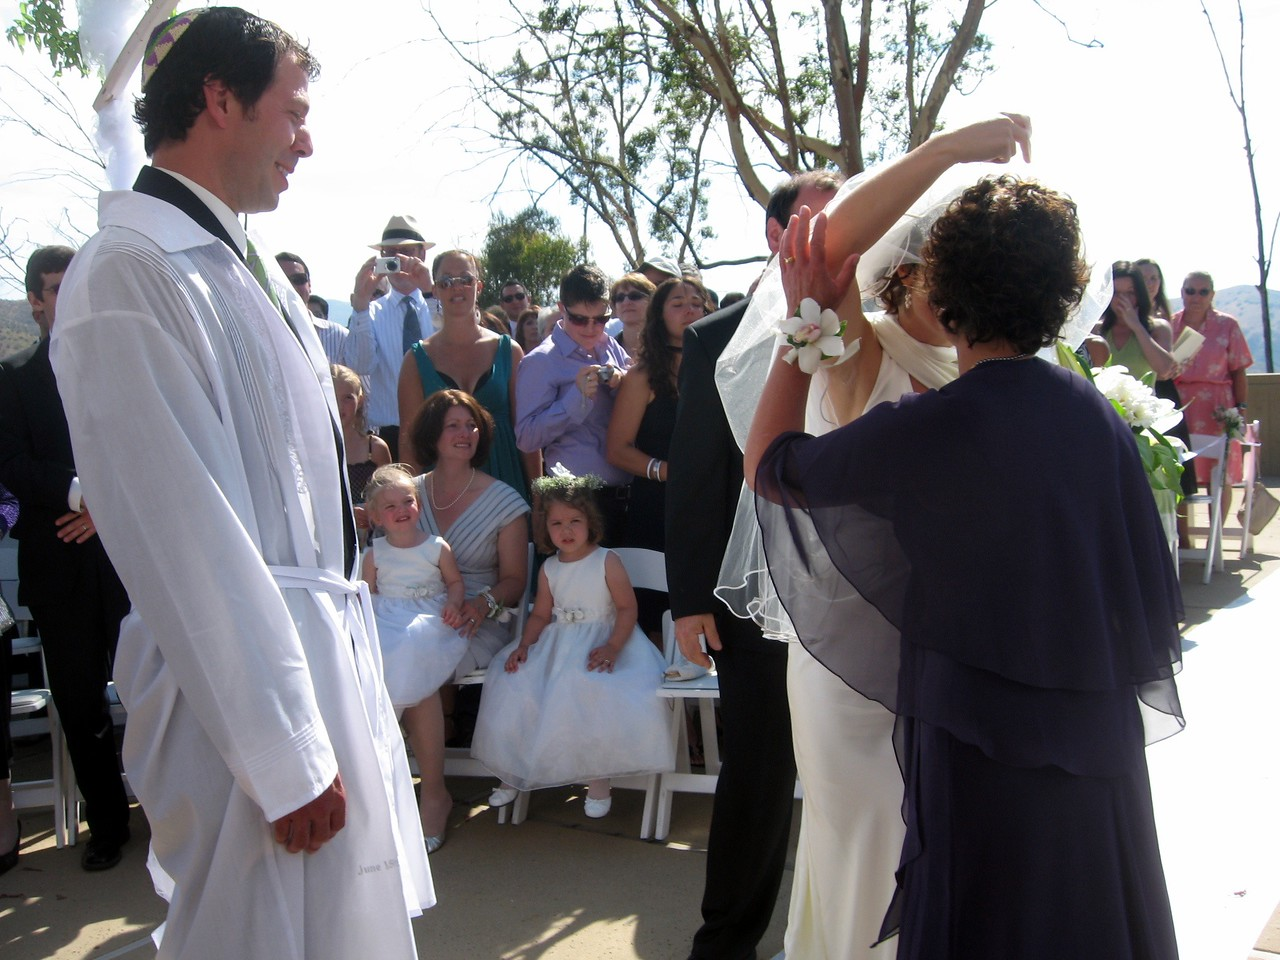 Hope (mother of the bride) kisses Abby while Avram and Gary (father of the bride) look on